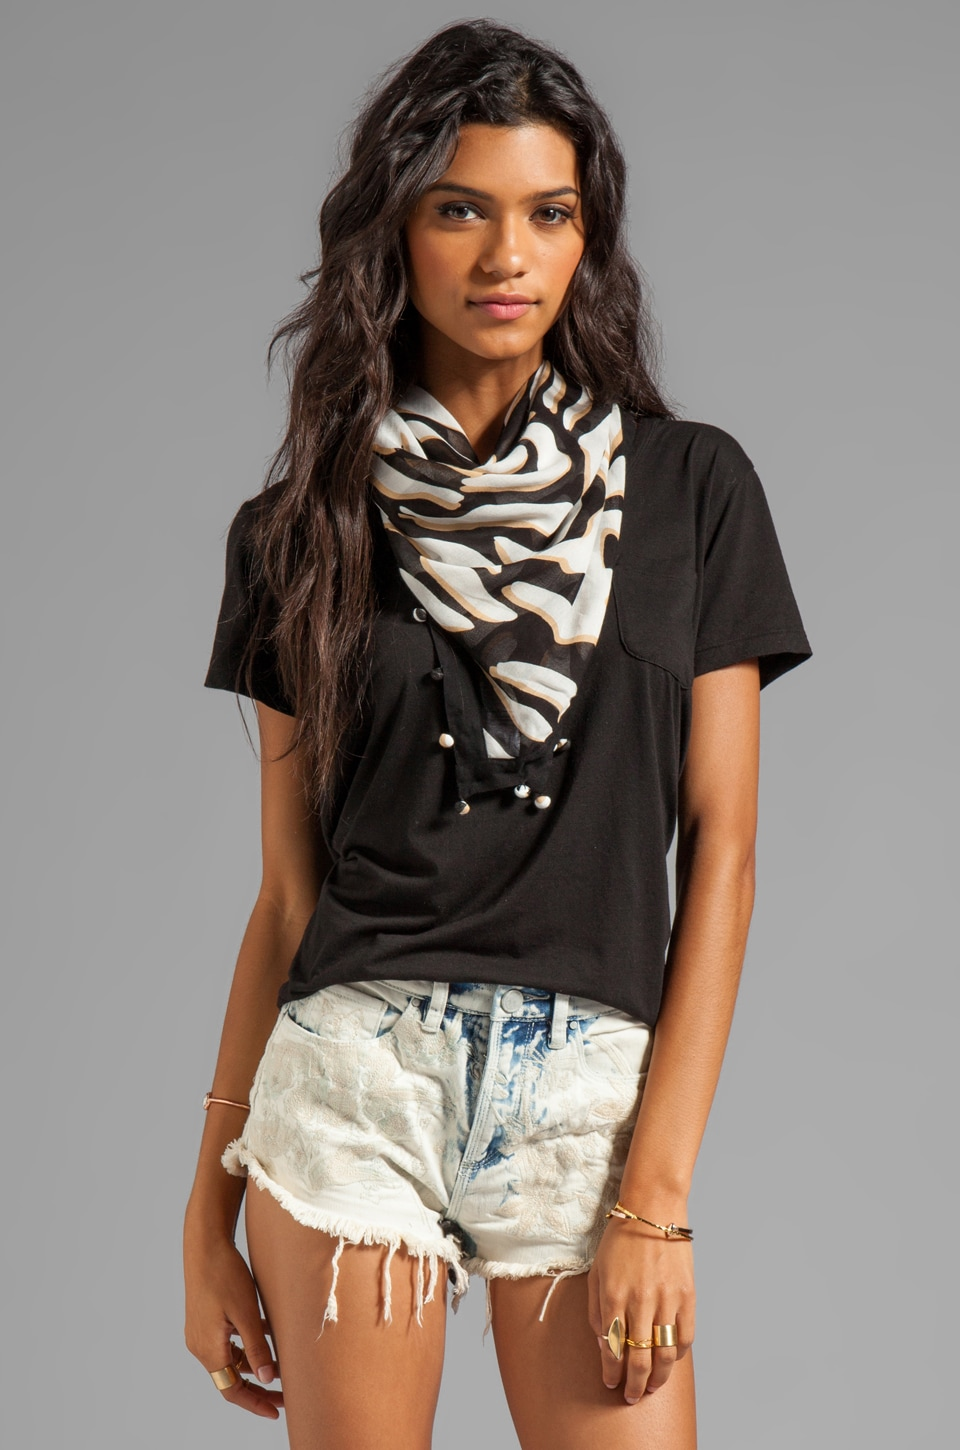 Diane von Furstenberg New Bubsy Day Scarf in Zebra Shadow Black